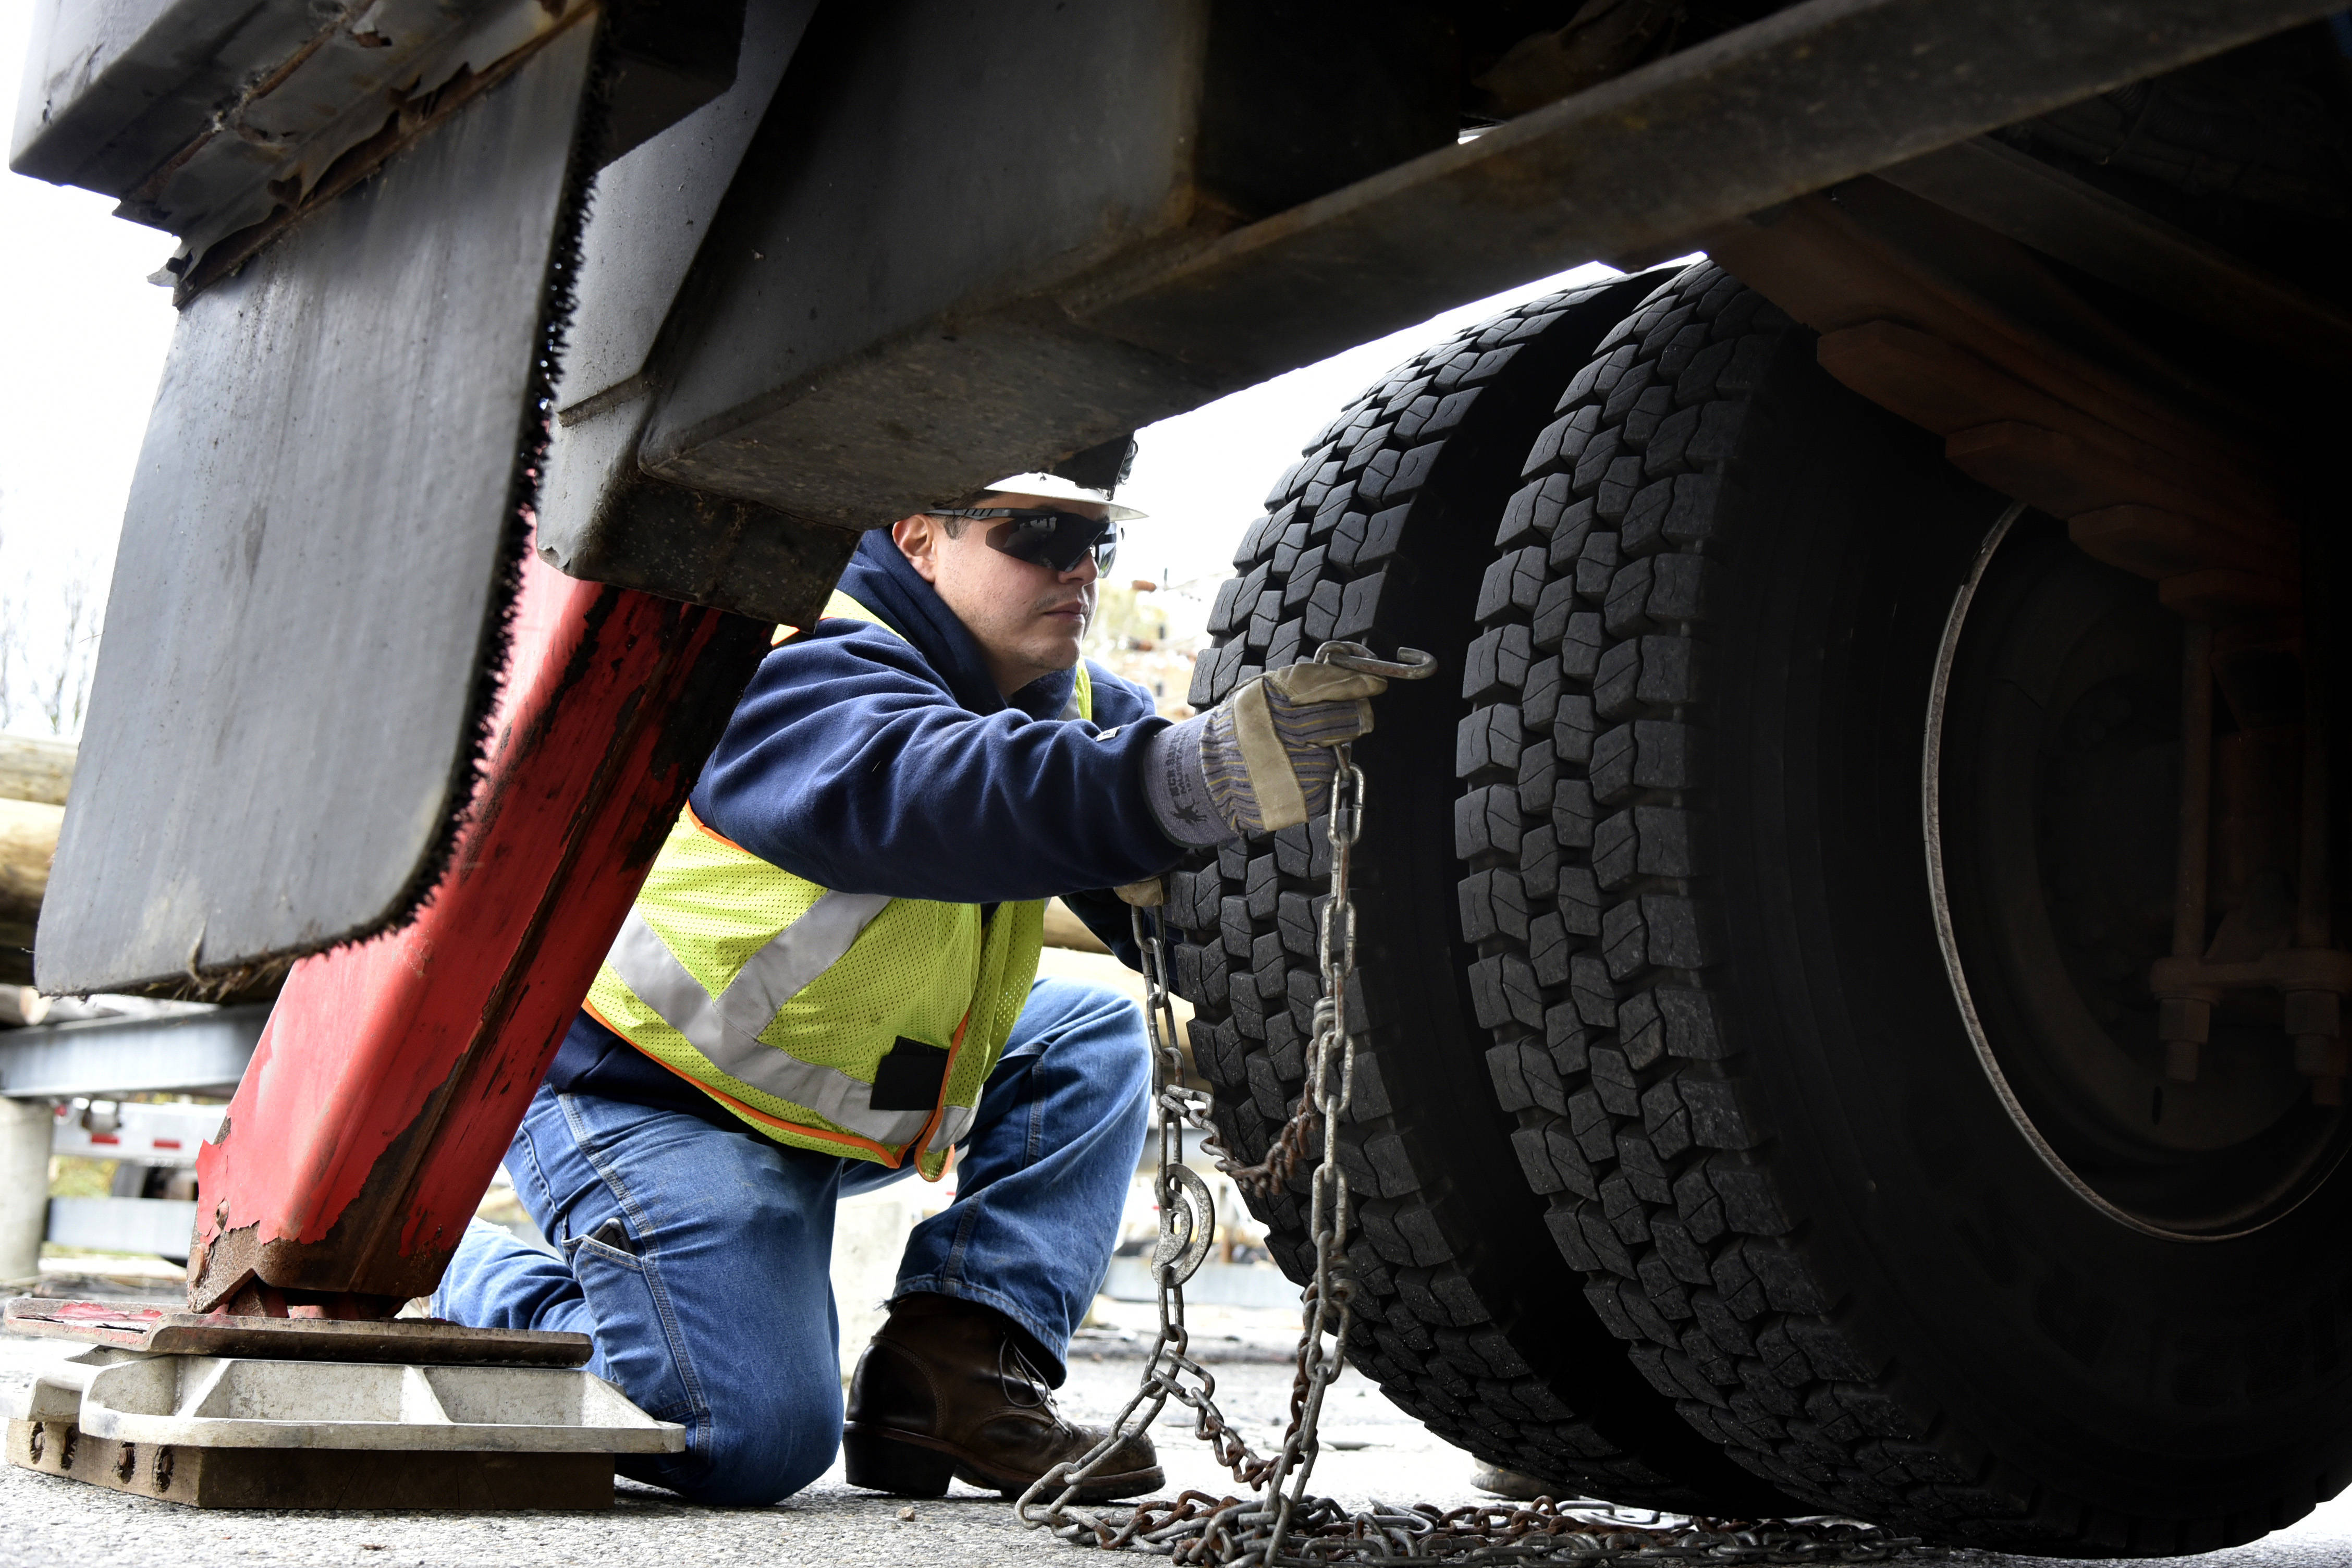 5960d2ffd3b5a8656749_JCPL_Crews_Preparing_for_Winter_Weather_-_checking_snow_chains_jpg_1.jpg